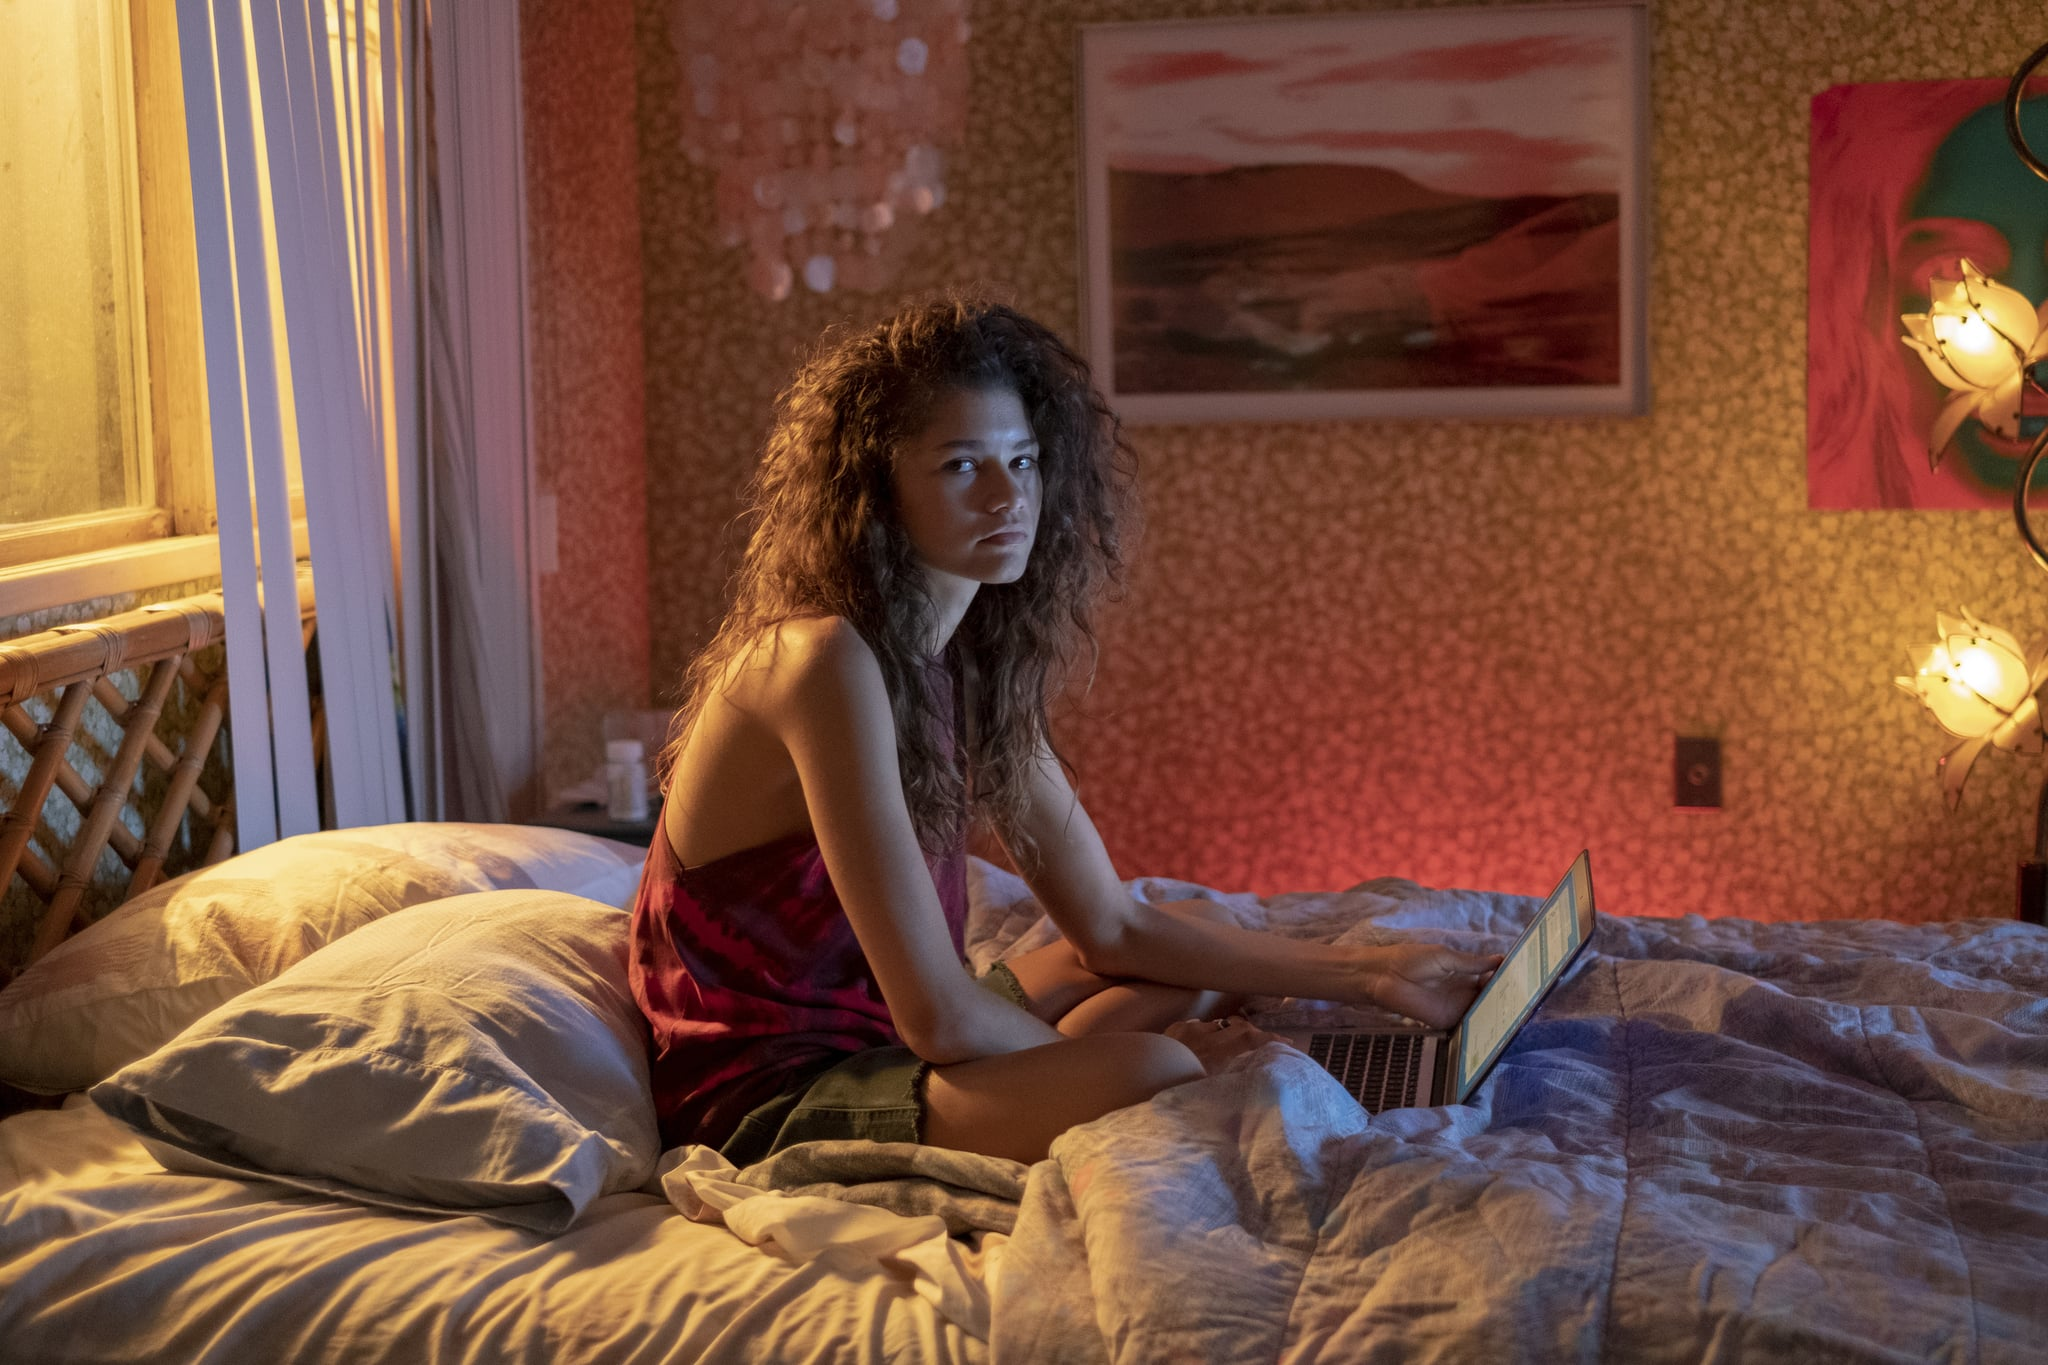 Here's Why We Have High Hopes For How the Heavy Topics Will Be Handled on Euphoria